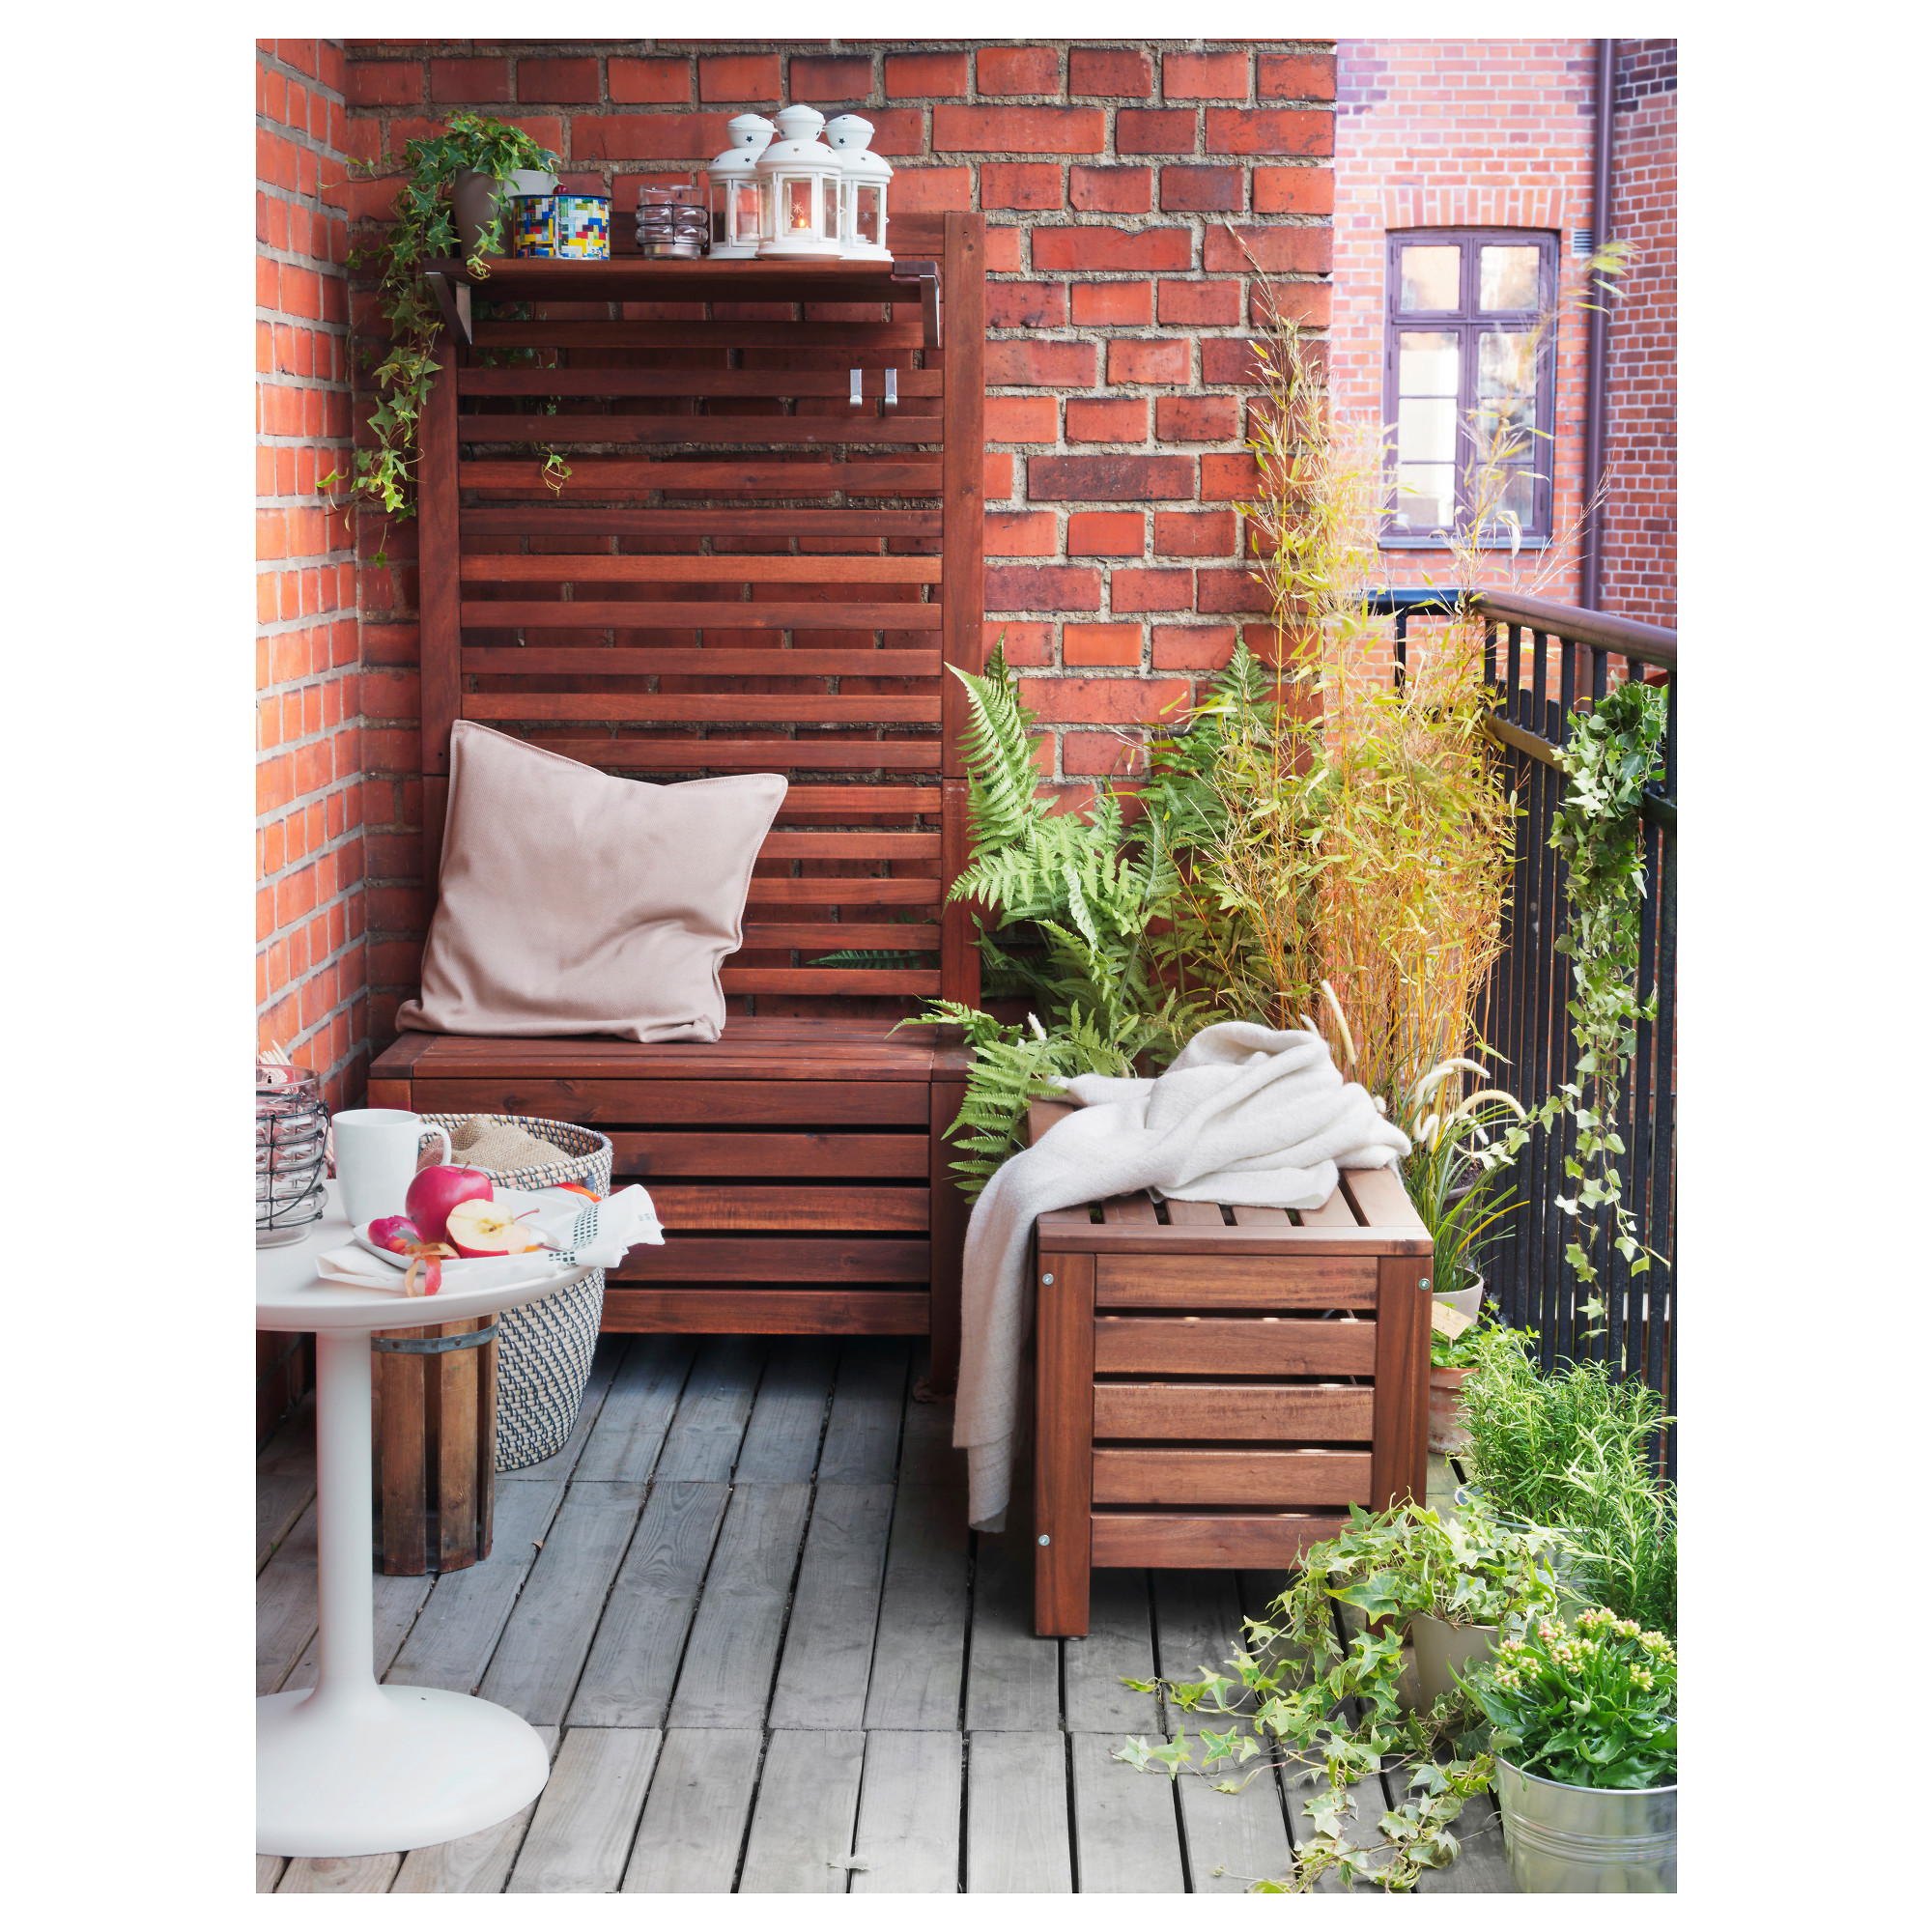 Ikea 196 Pplar 214 Storage Bench Outdoor Brown Stained In